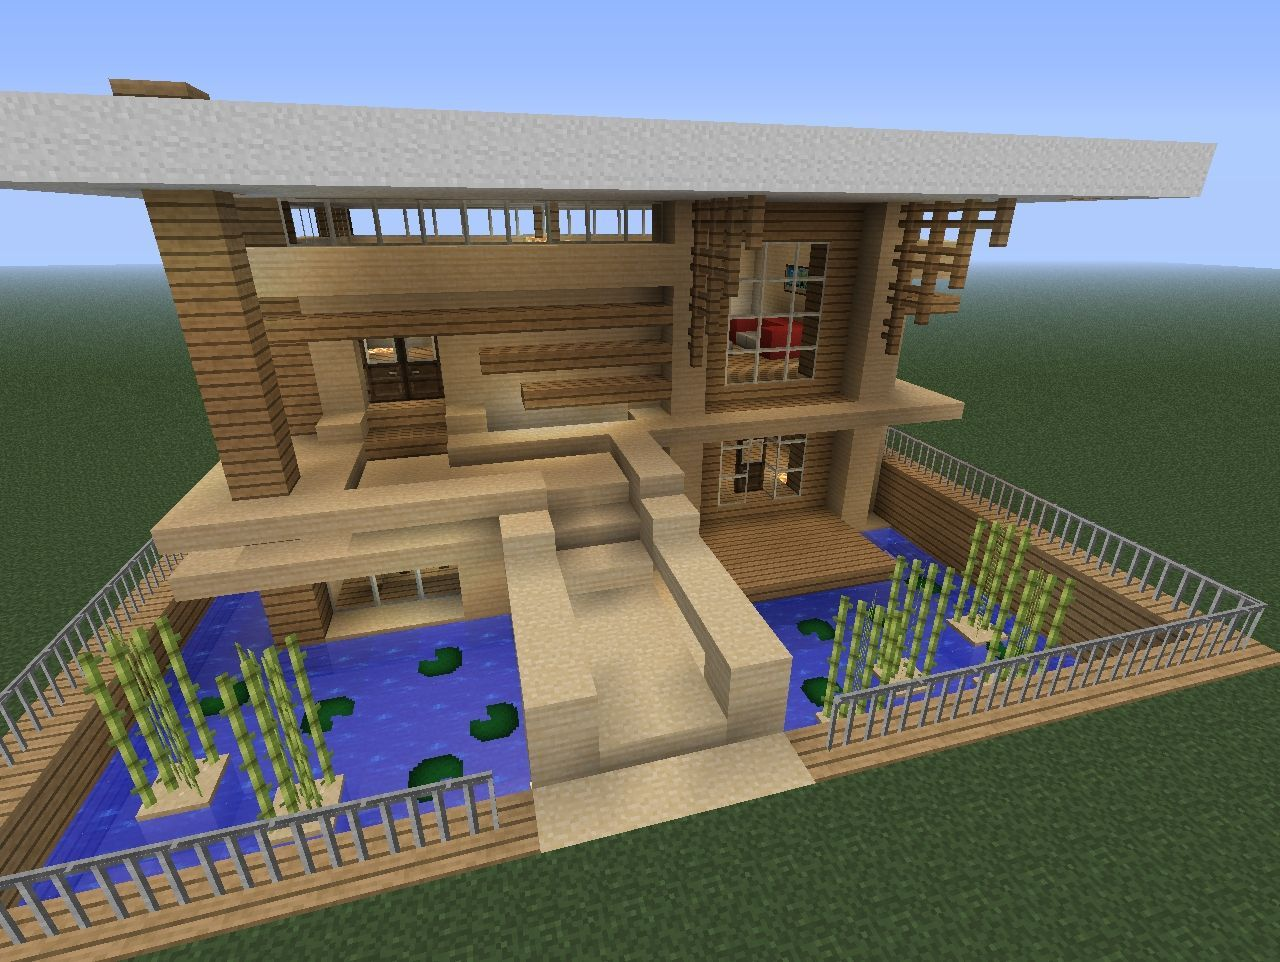 25 best ideas about minecraft houses on pinterest minecraft minecraft awesome and minecraft buildings - Minecraft Design Ideas